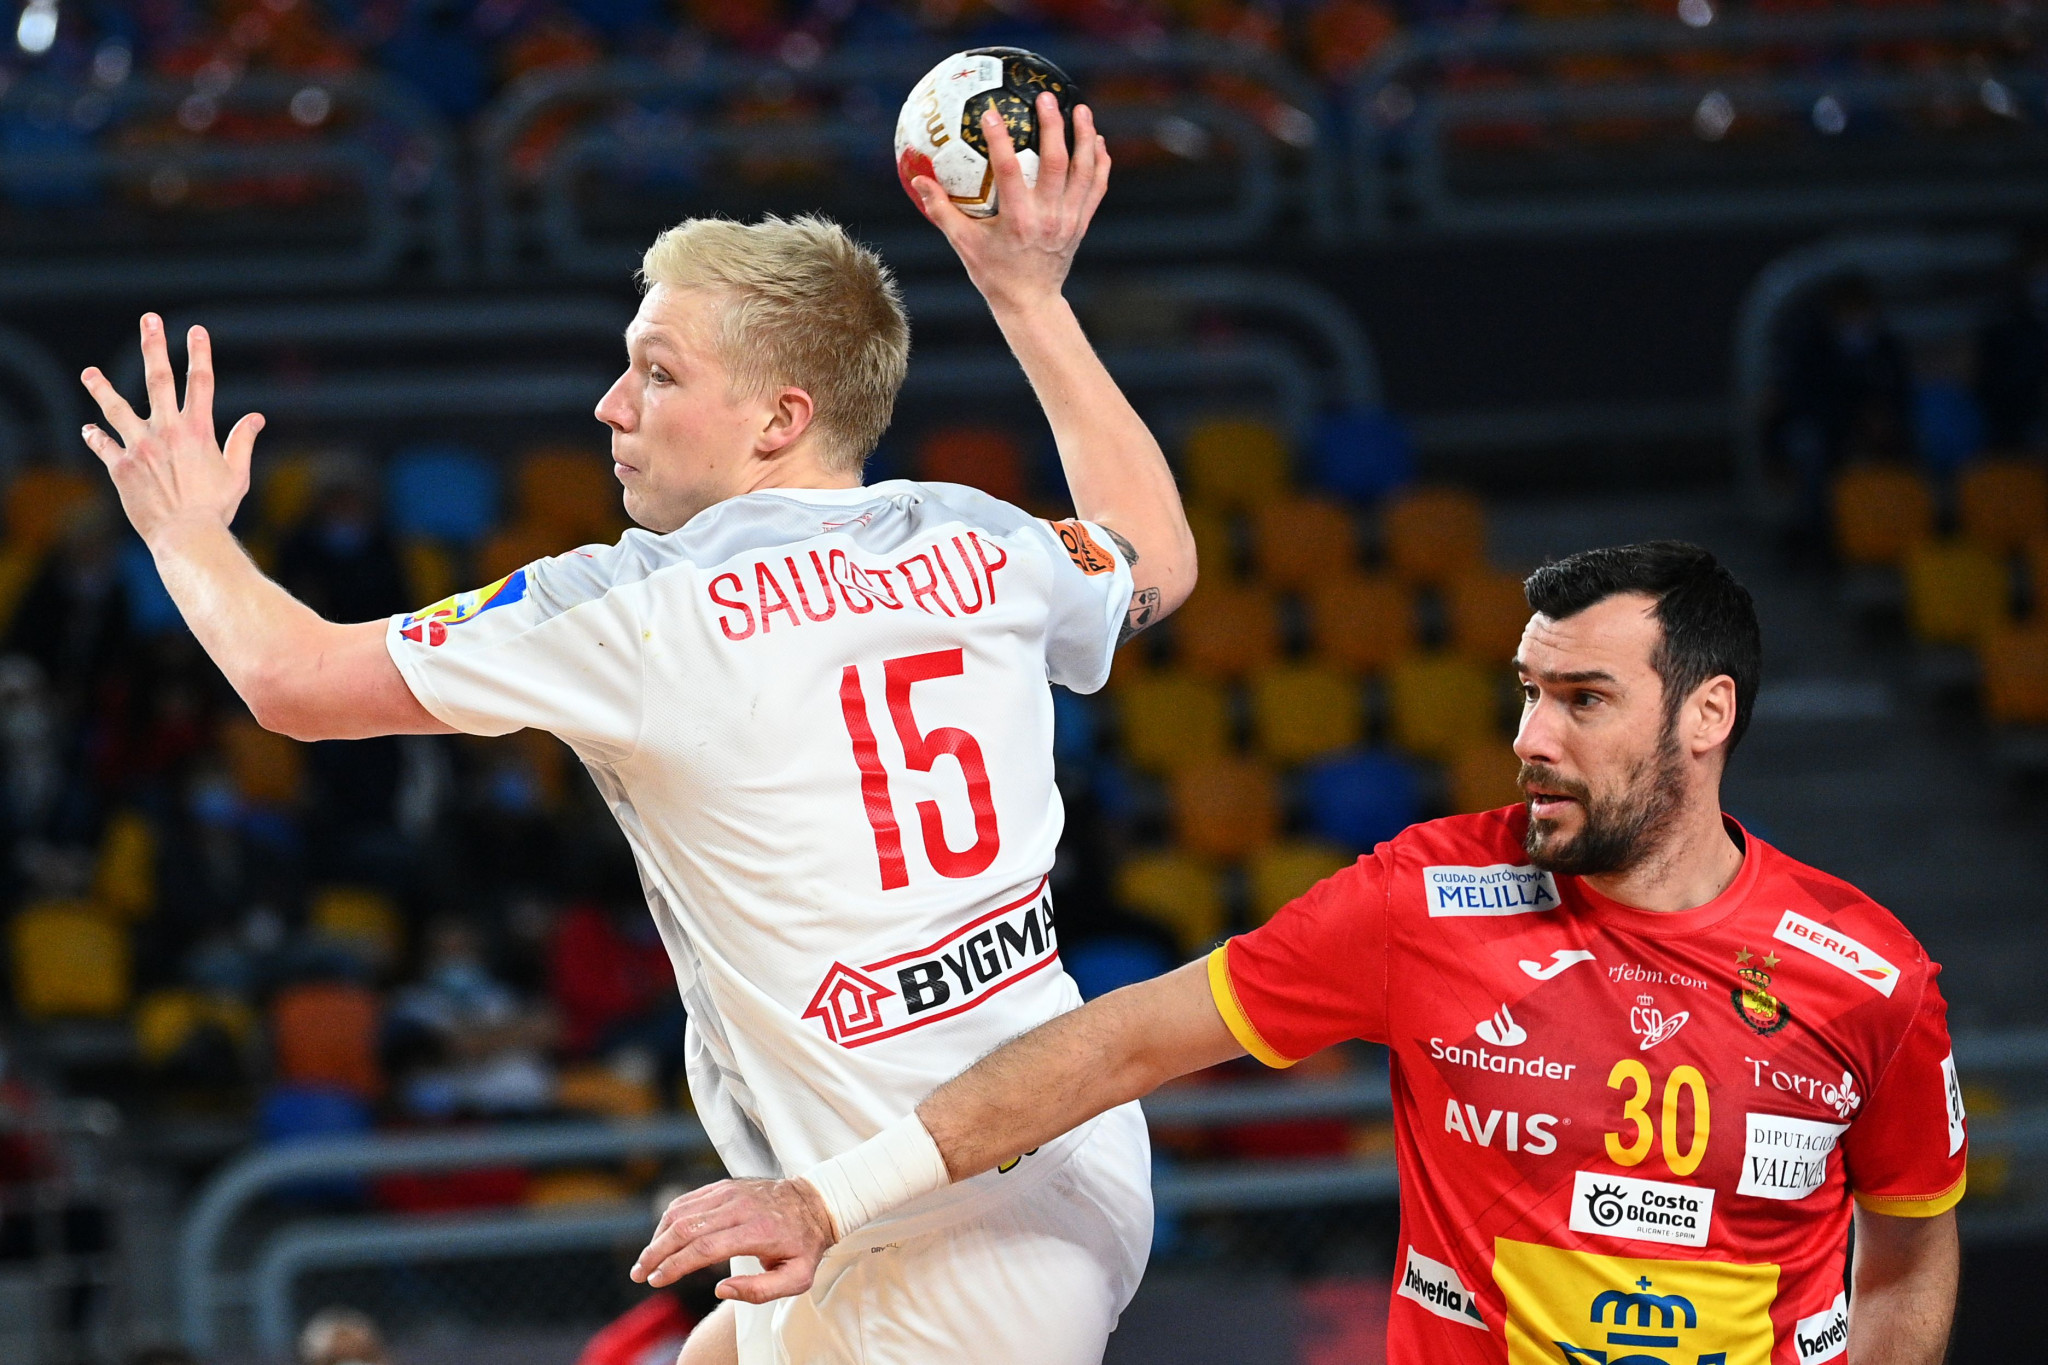 Men's Under-19 European Handball Championship to be held in August